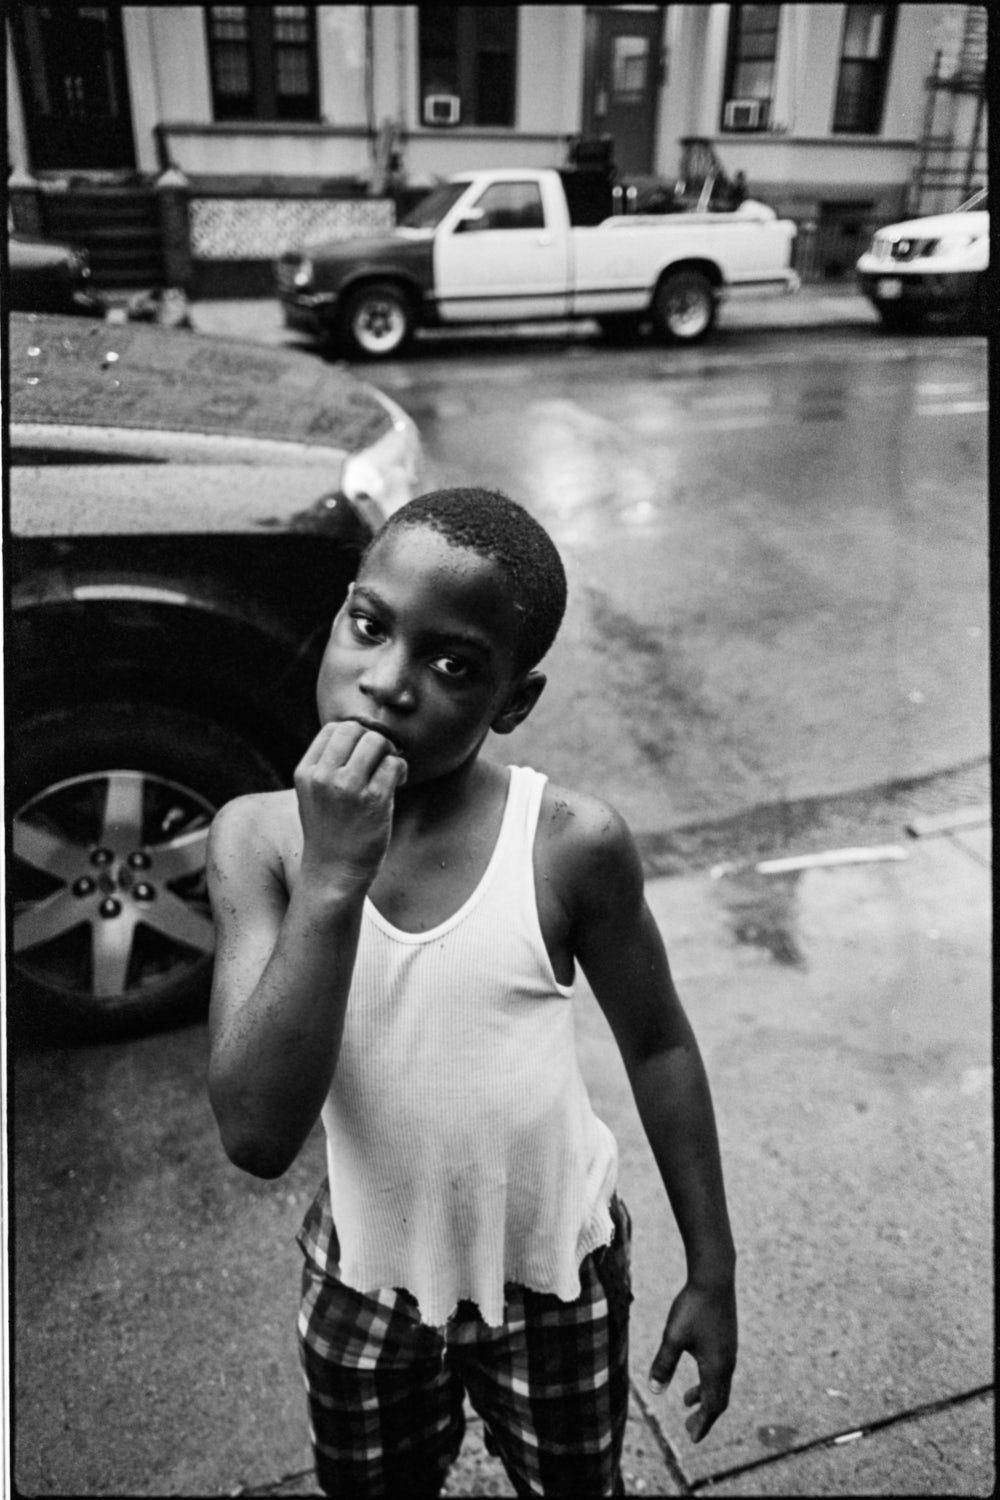 An image of a young boy by photographer Andre D Wagner